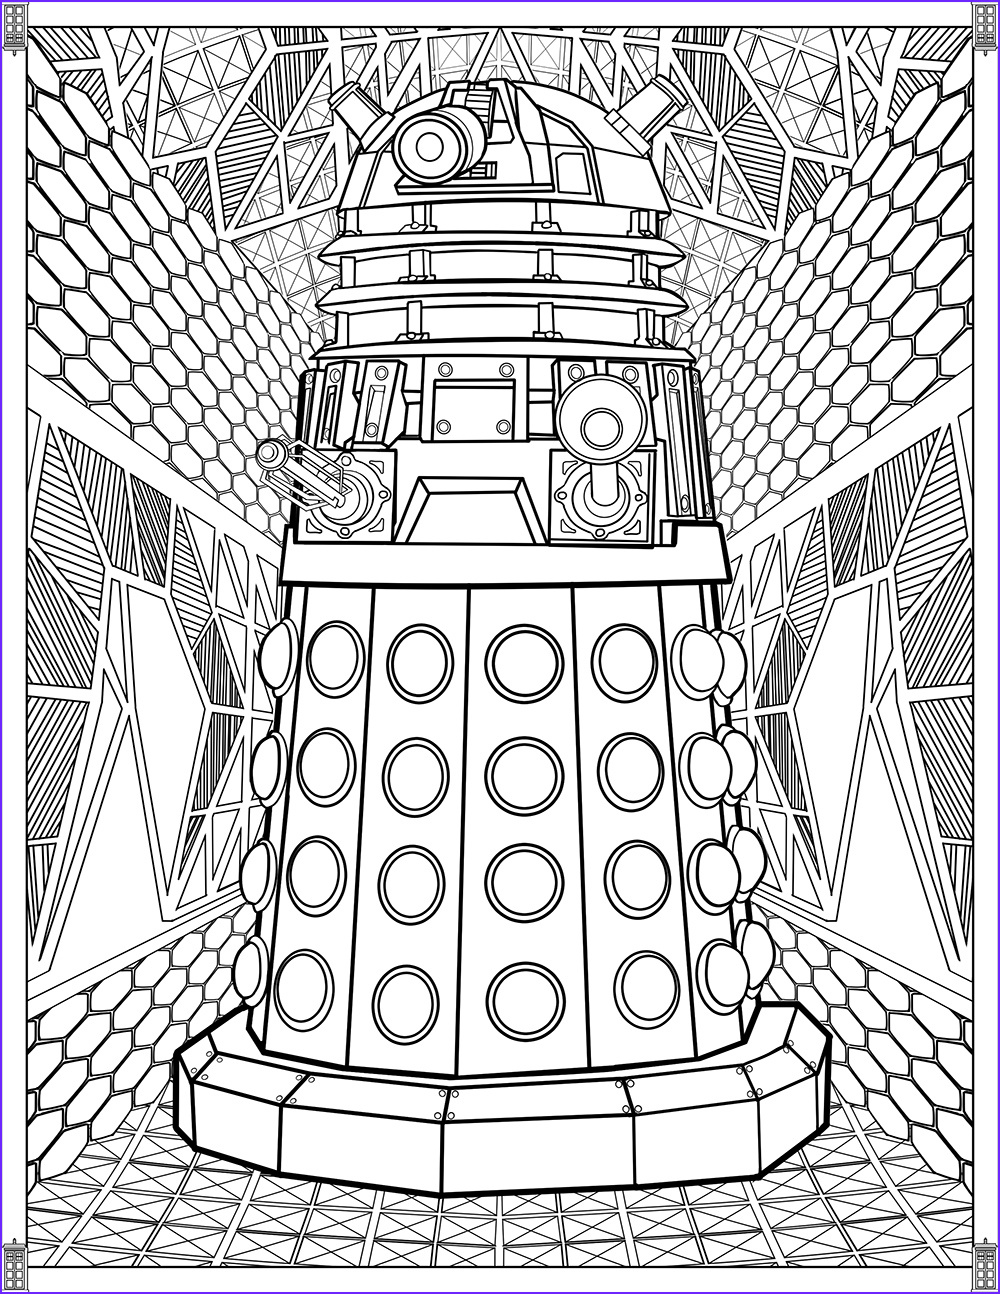 p 1089 doctor who coloring pages